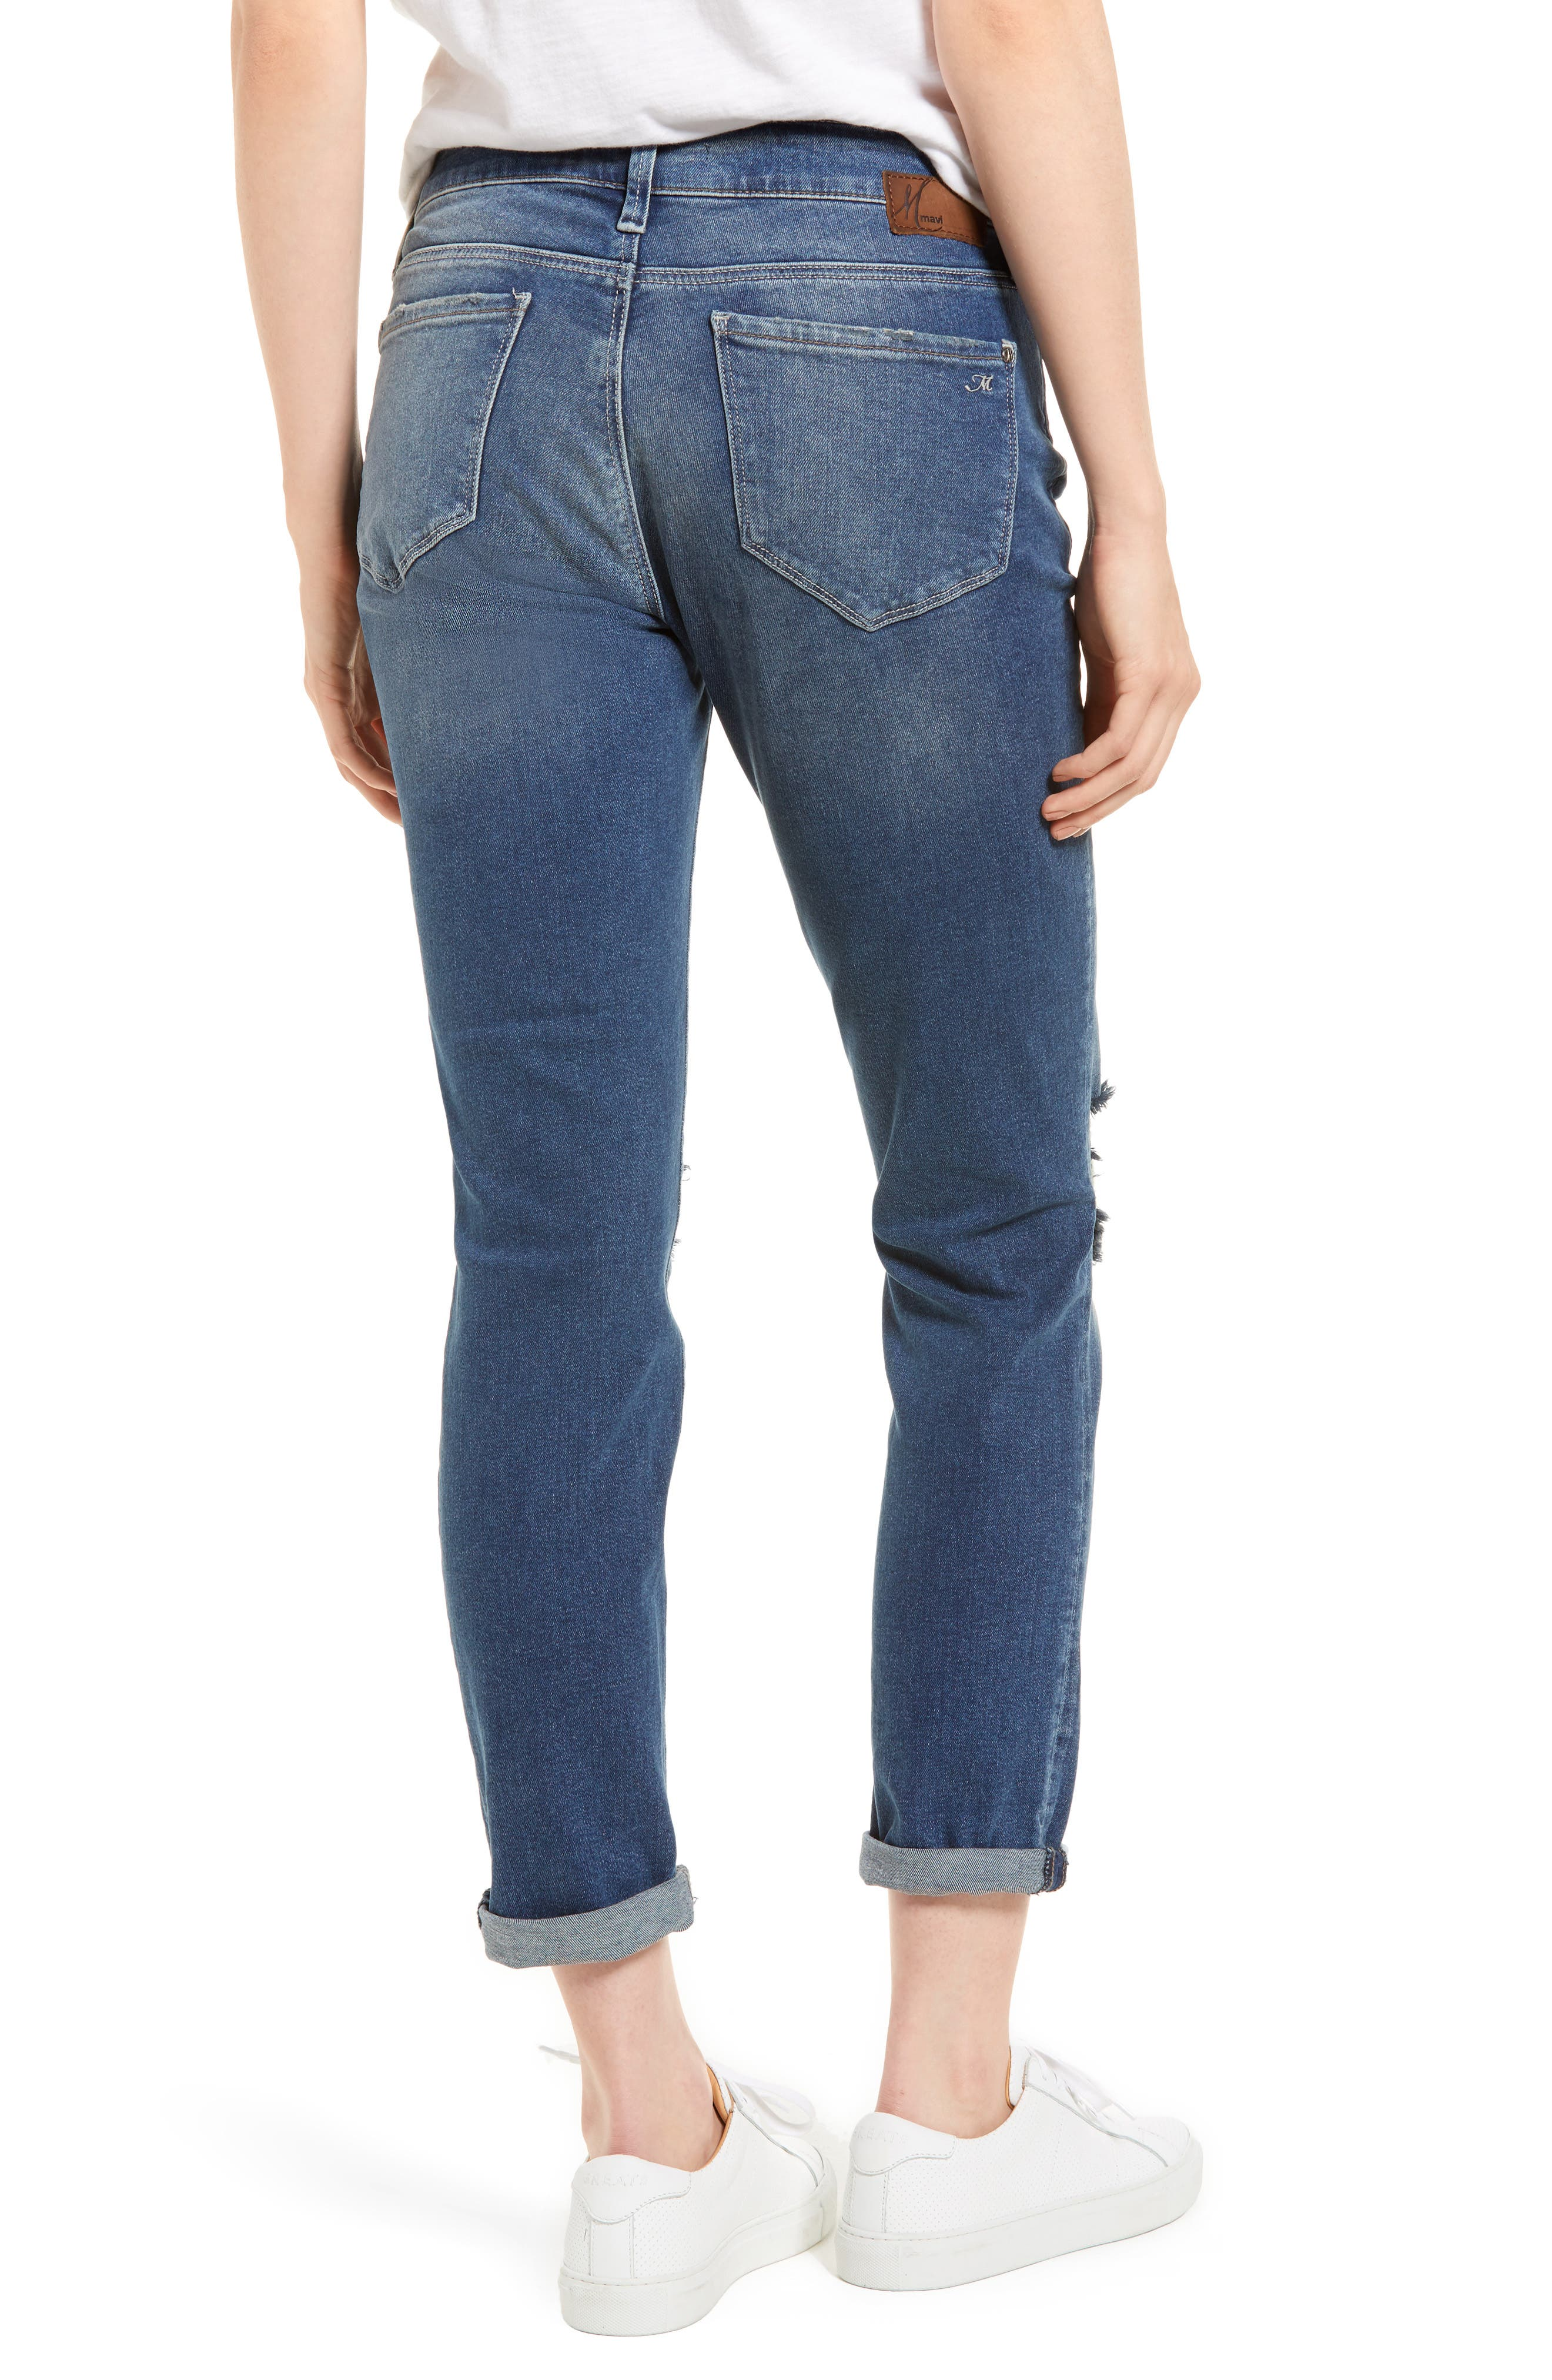 Ada Ripped Boyfriend Jeans,                             Alternate thumbnail 2, color,                             Mid Ripped Vintage